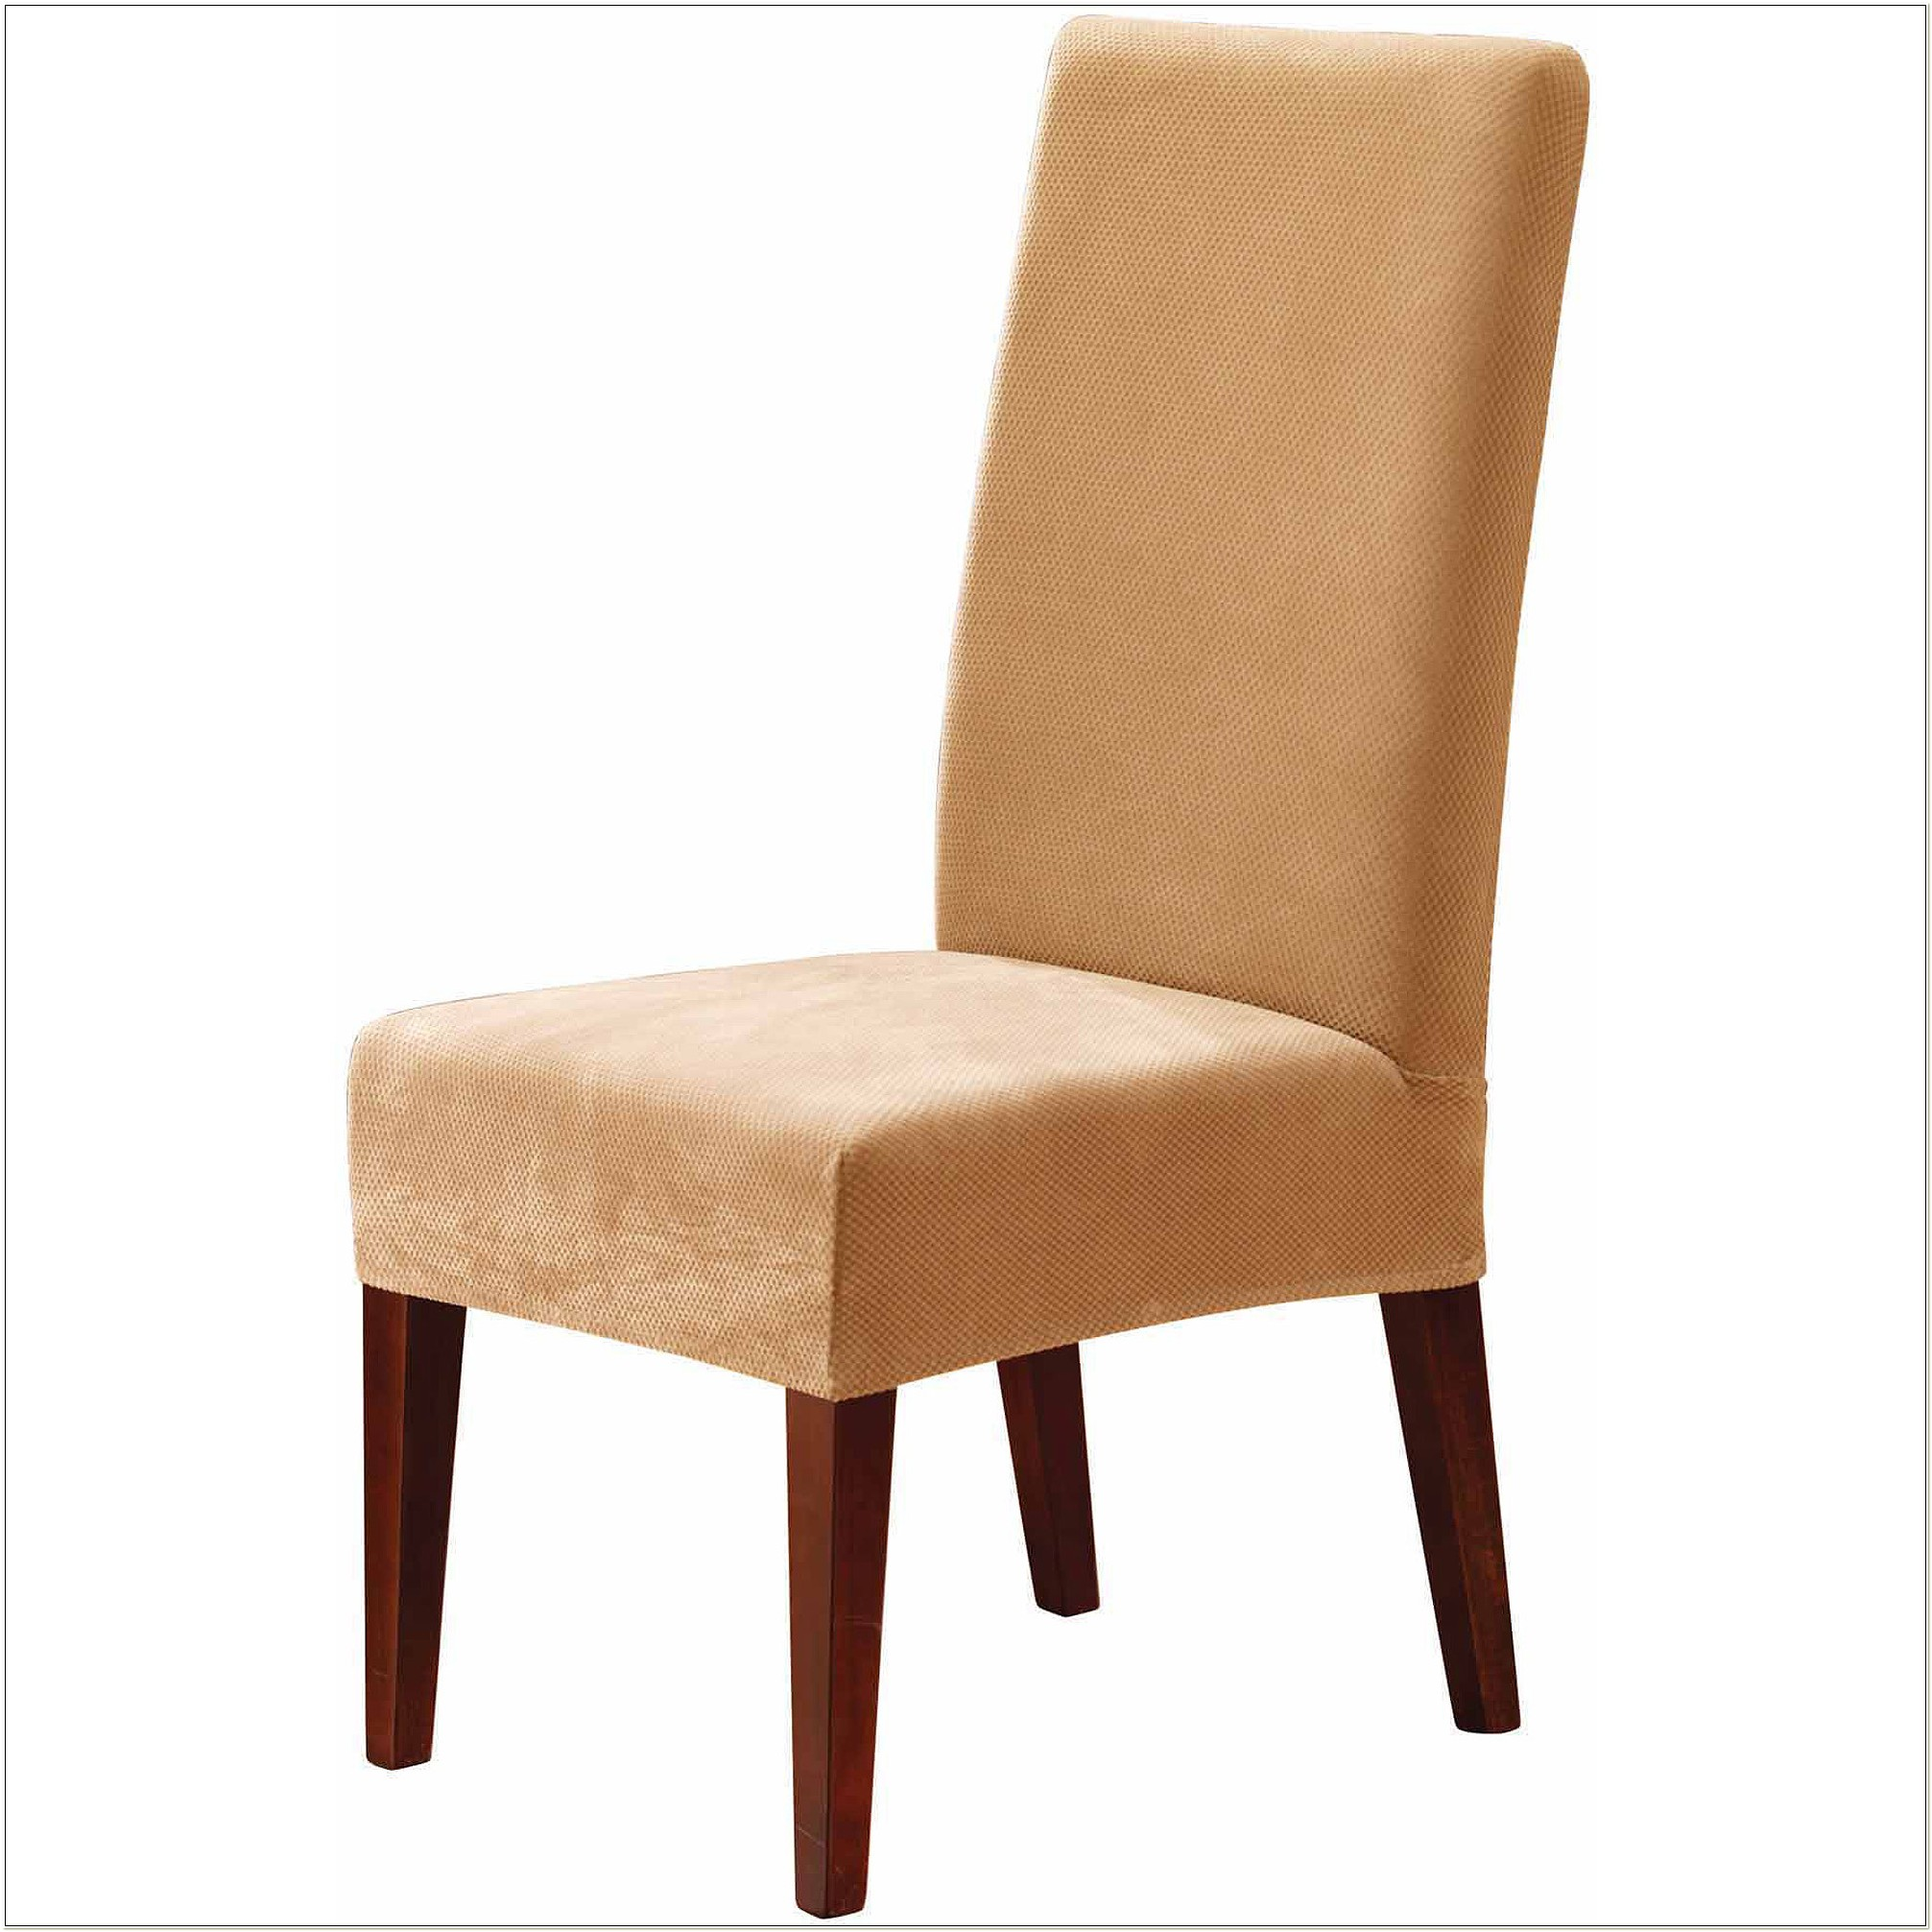 Walmart Dining Room Chair Seat Covers